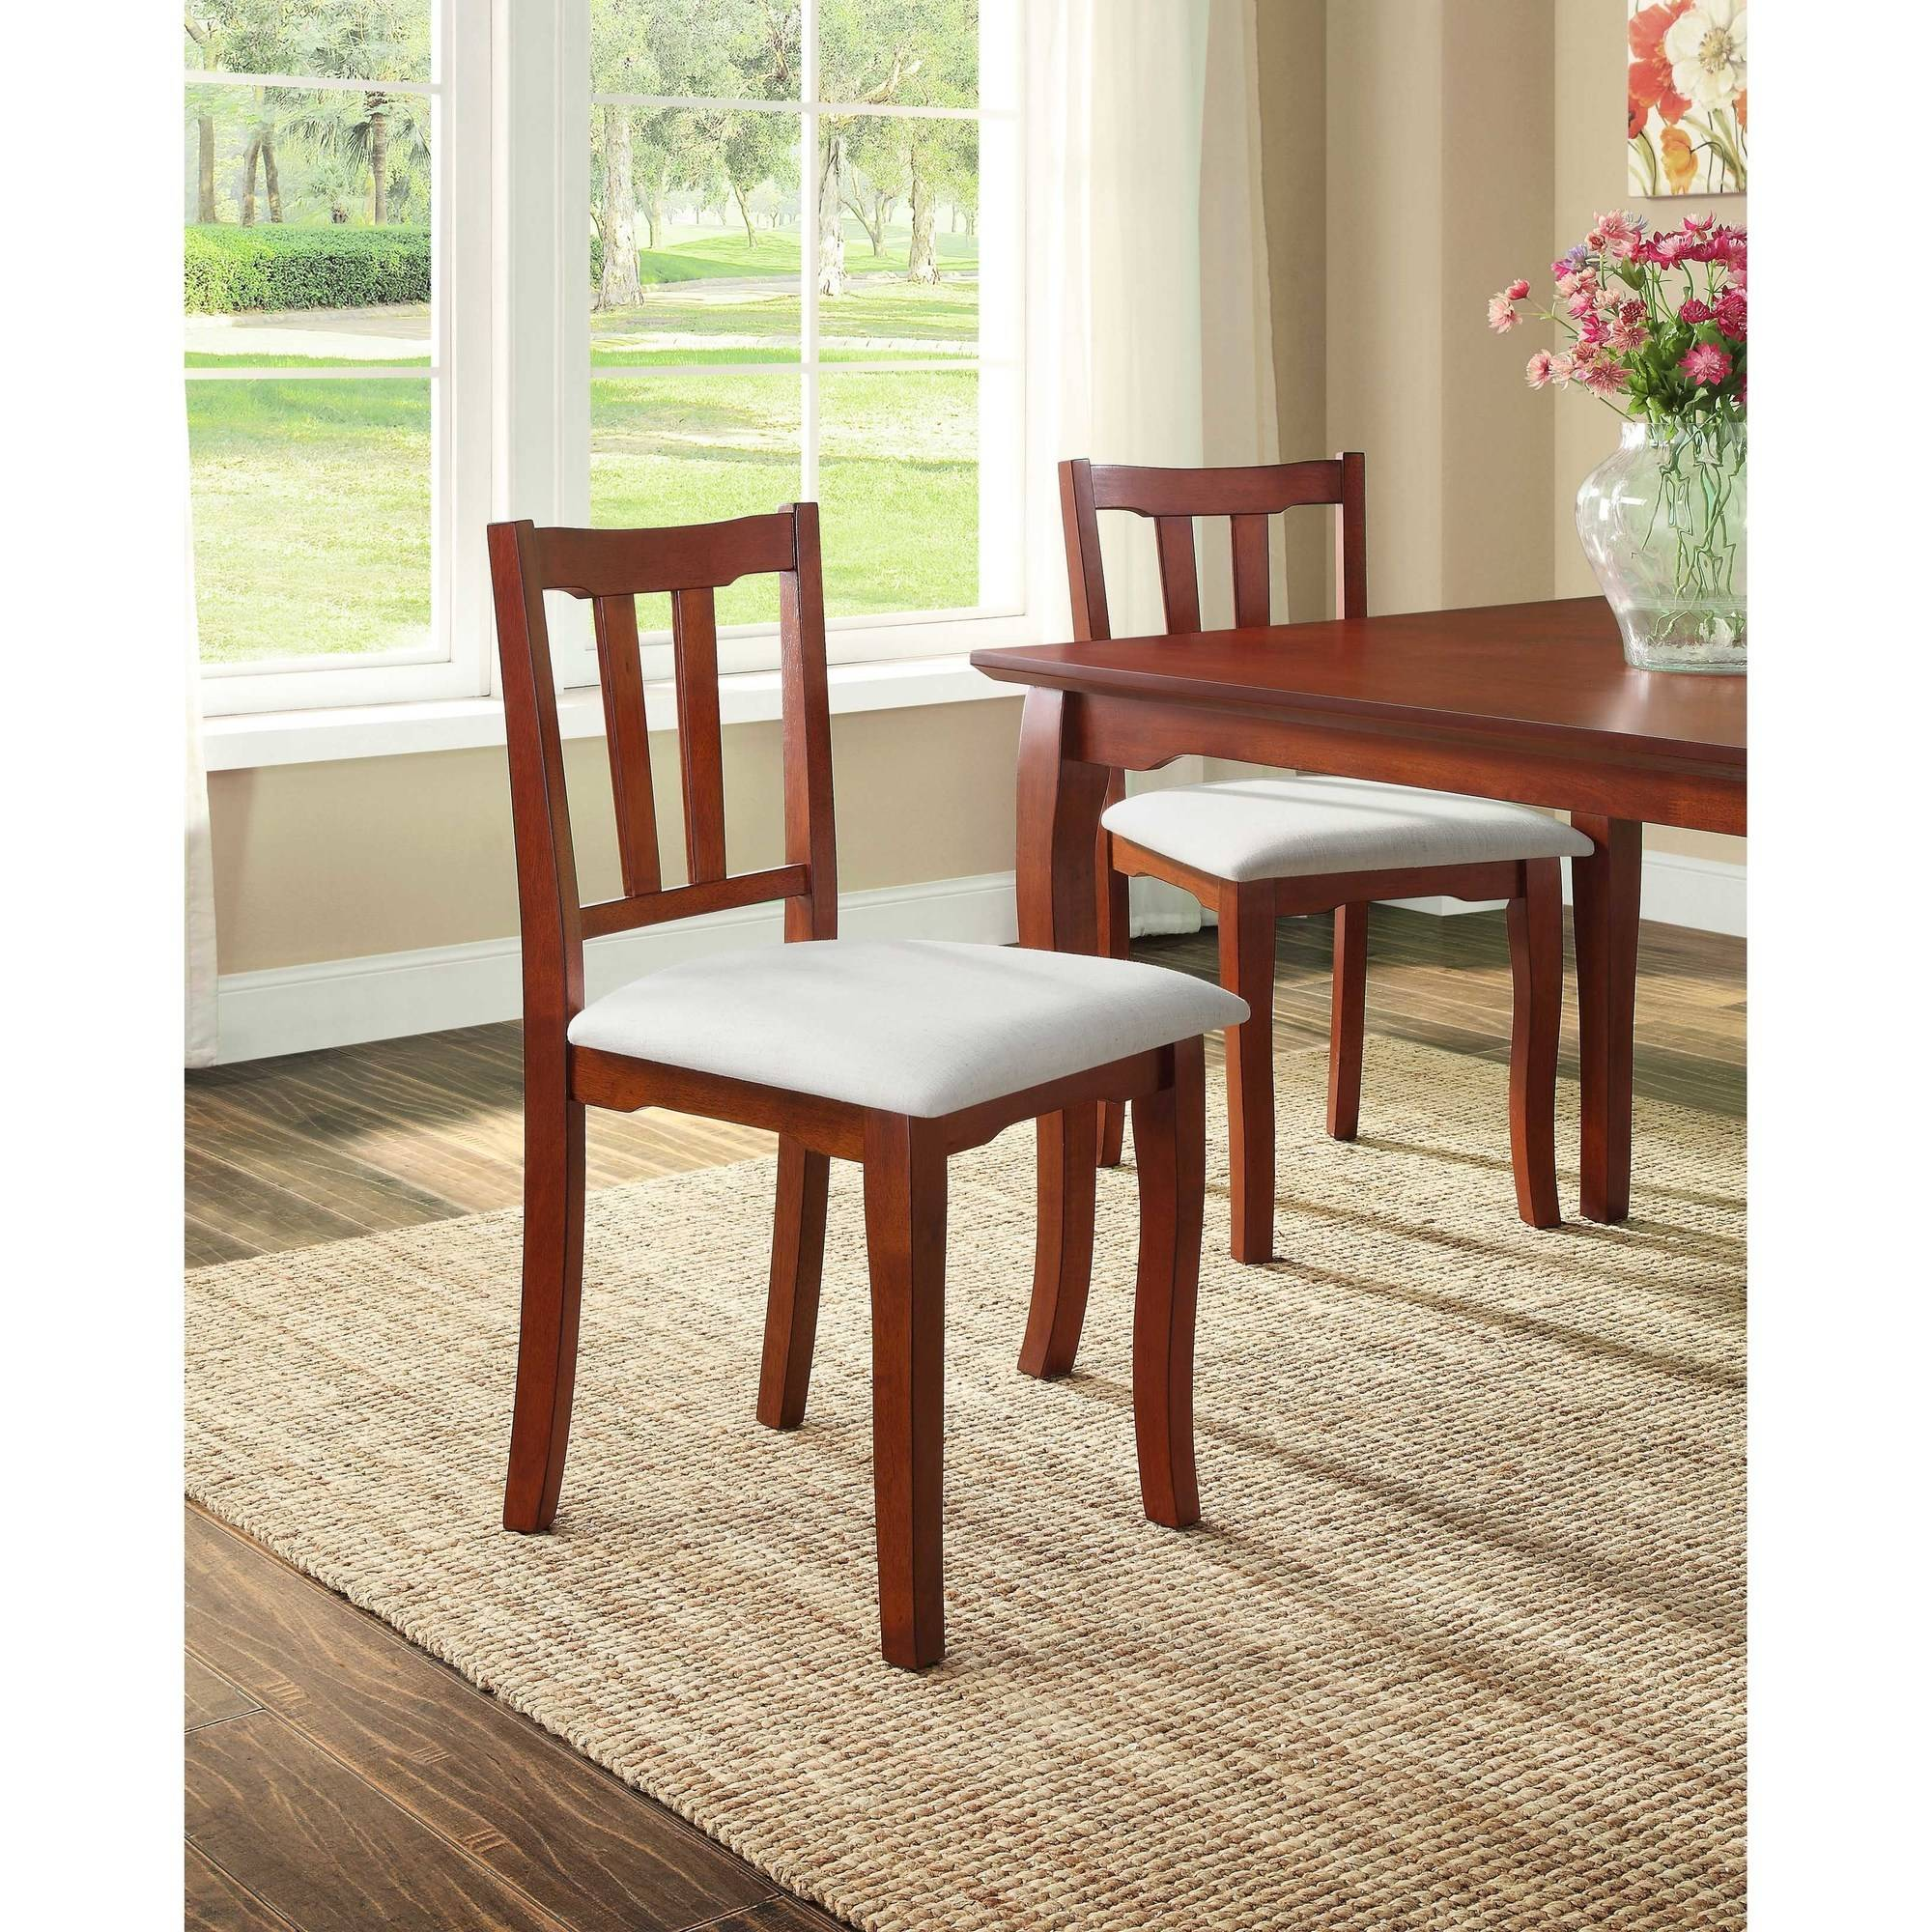 Better Homes and Gardens Ashwood Road Dining Chairs, Set of 2 by